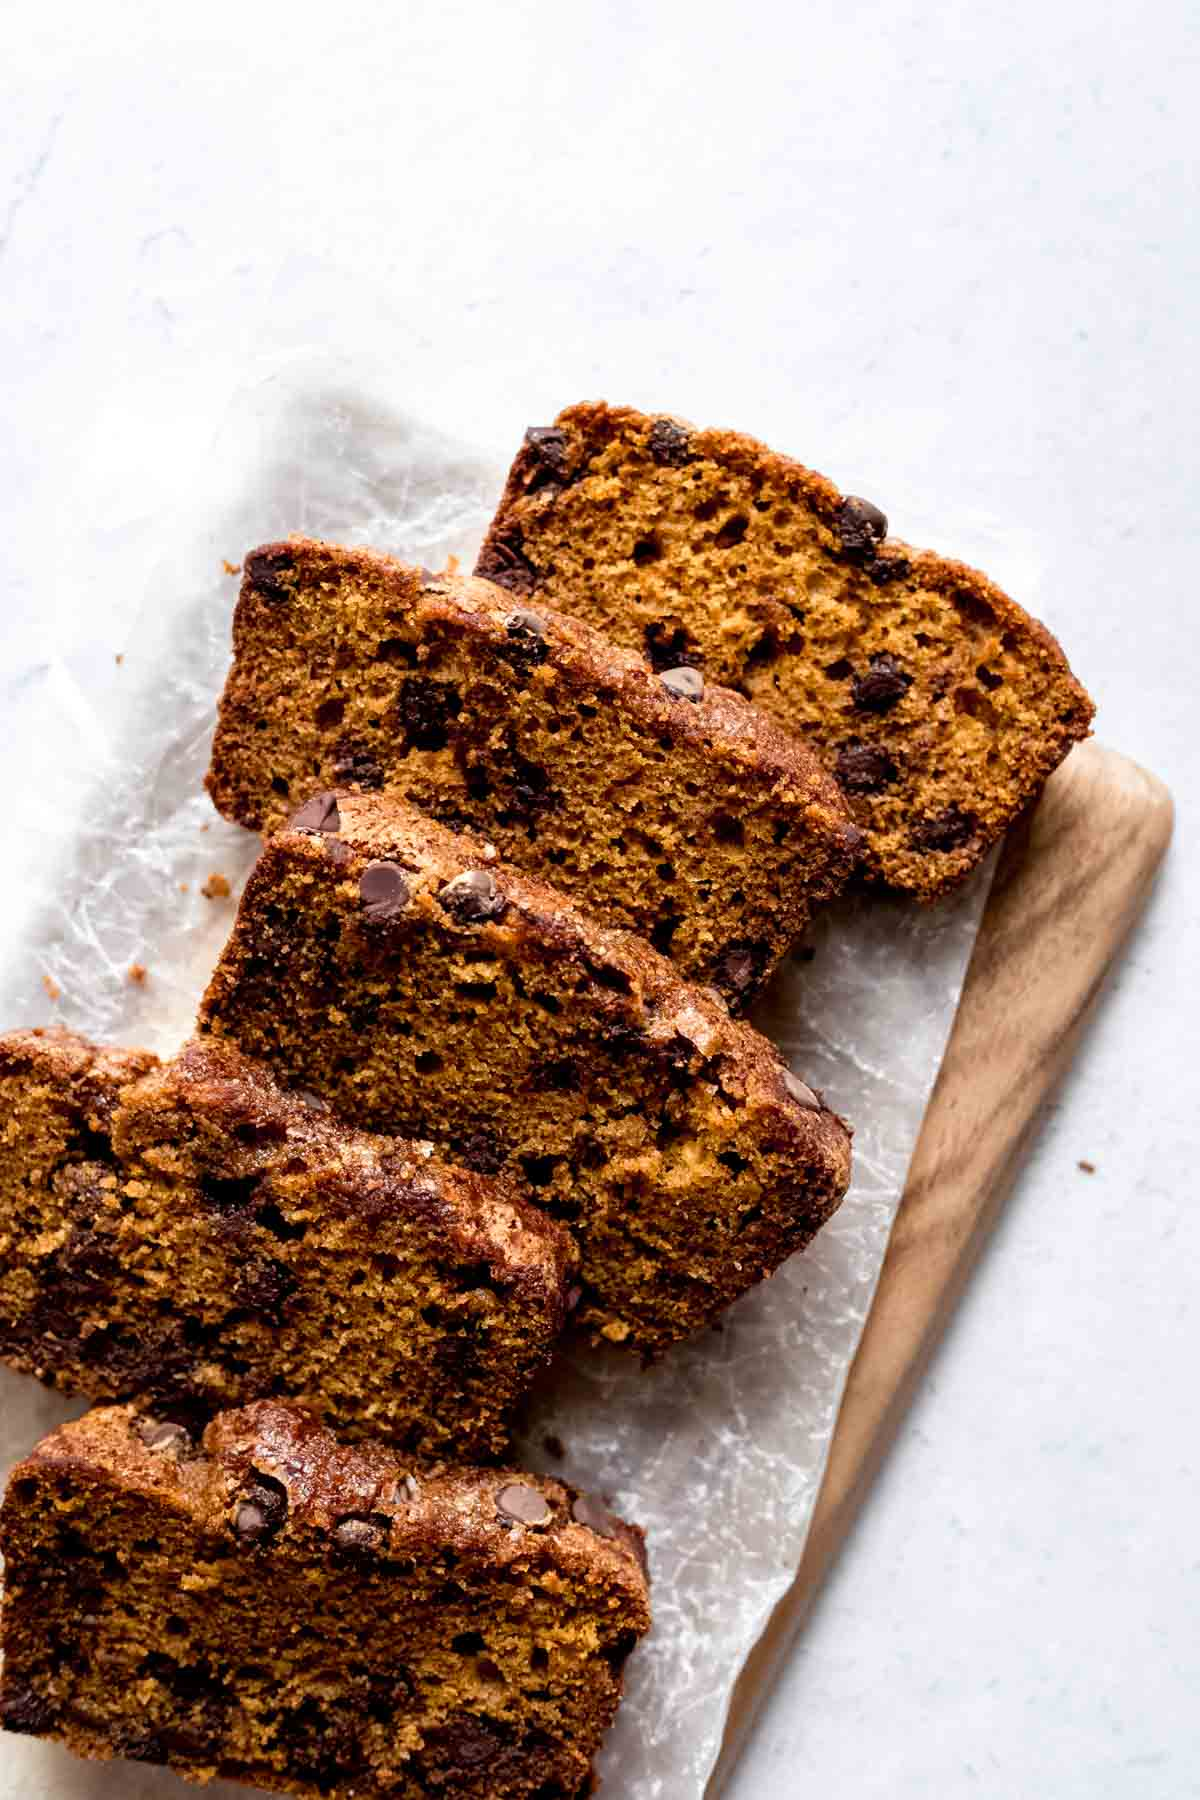 Chocolate Chip Pumpkin Bread on a serving board